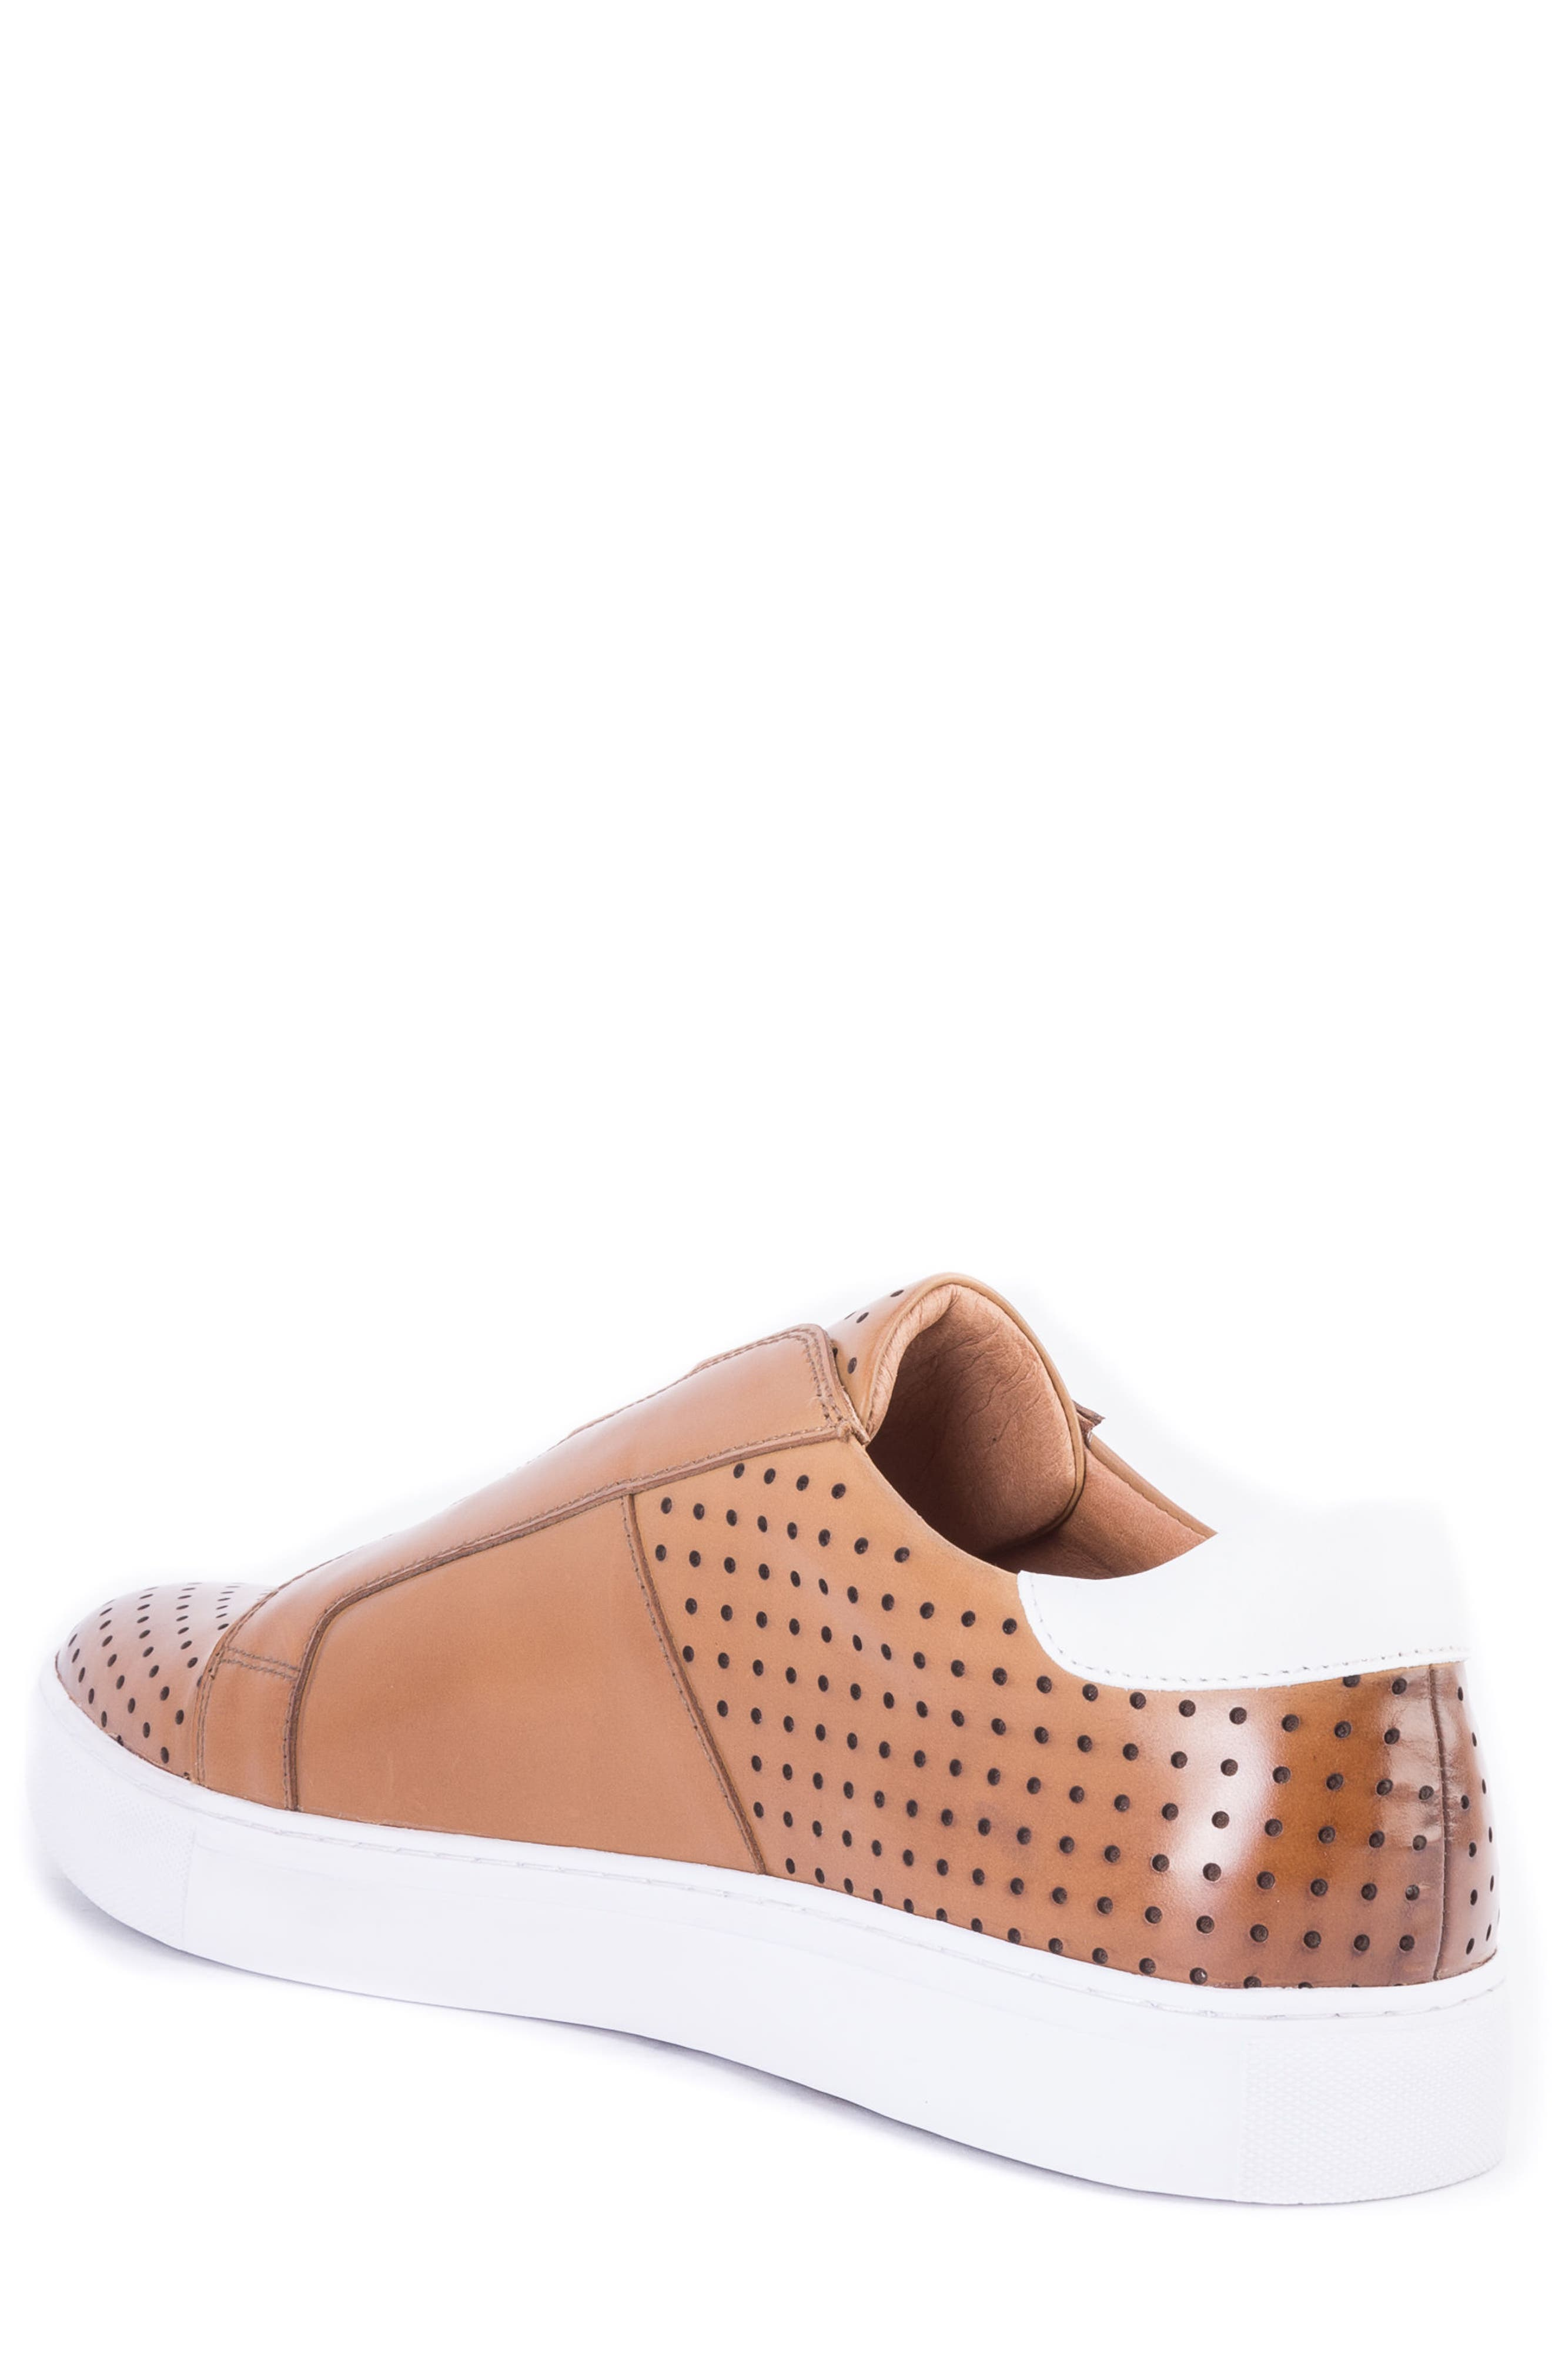 Rowley Perforated Laceless Sneaker,                             Alternate thumbnail 2, color,                             COGNAC LEATHER